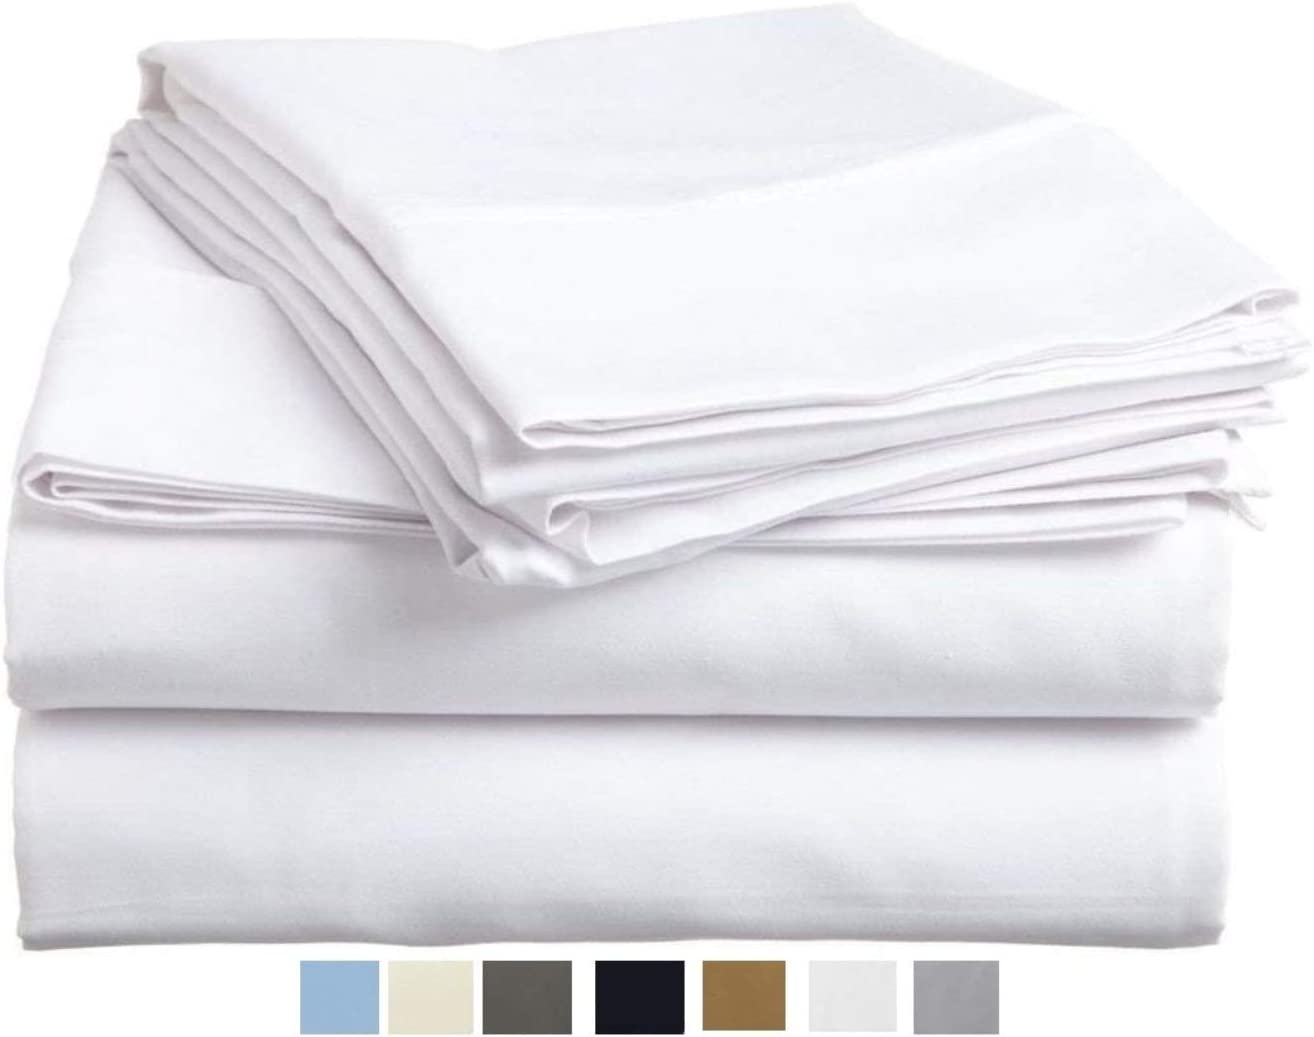 100% Long Staple Cotton 4 Pieces Sheet Sets, 600 TC Extra Soft -  Breathable & Cooling Bedding Sheets Fits Upto 16 Inches Deep Pocket Mattress, Size: Twin XL, Color: White Solid